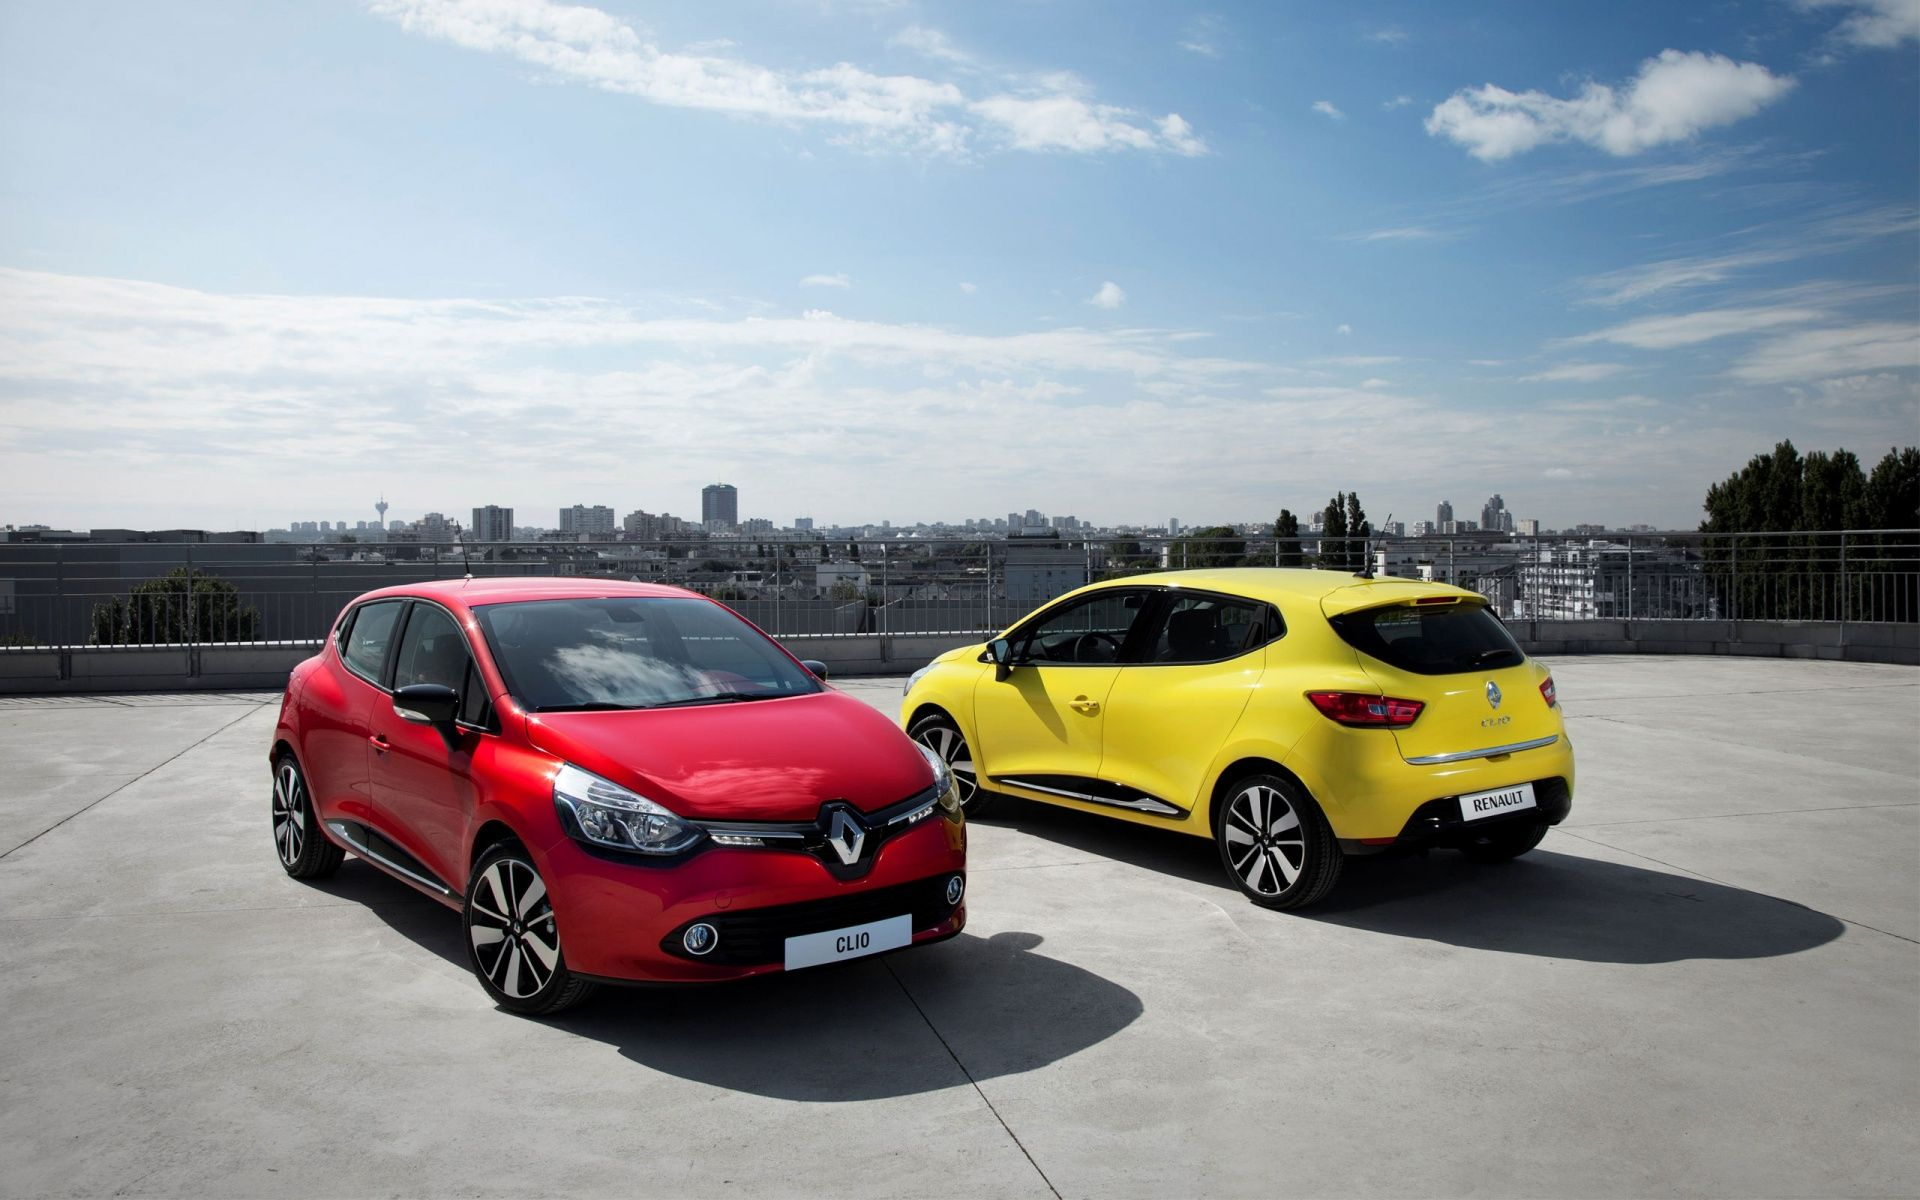 Renault clio red inspiration renault clio pinterest cars and full throttle